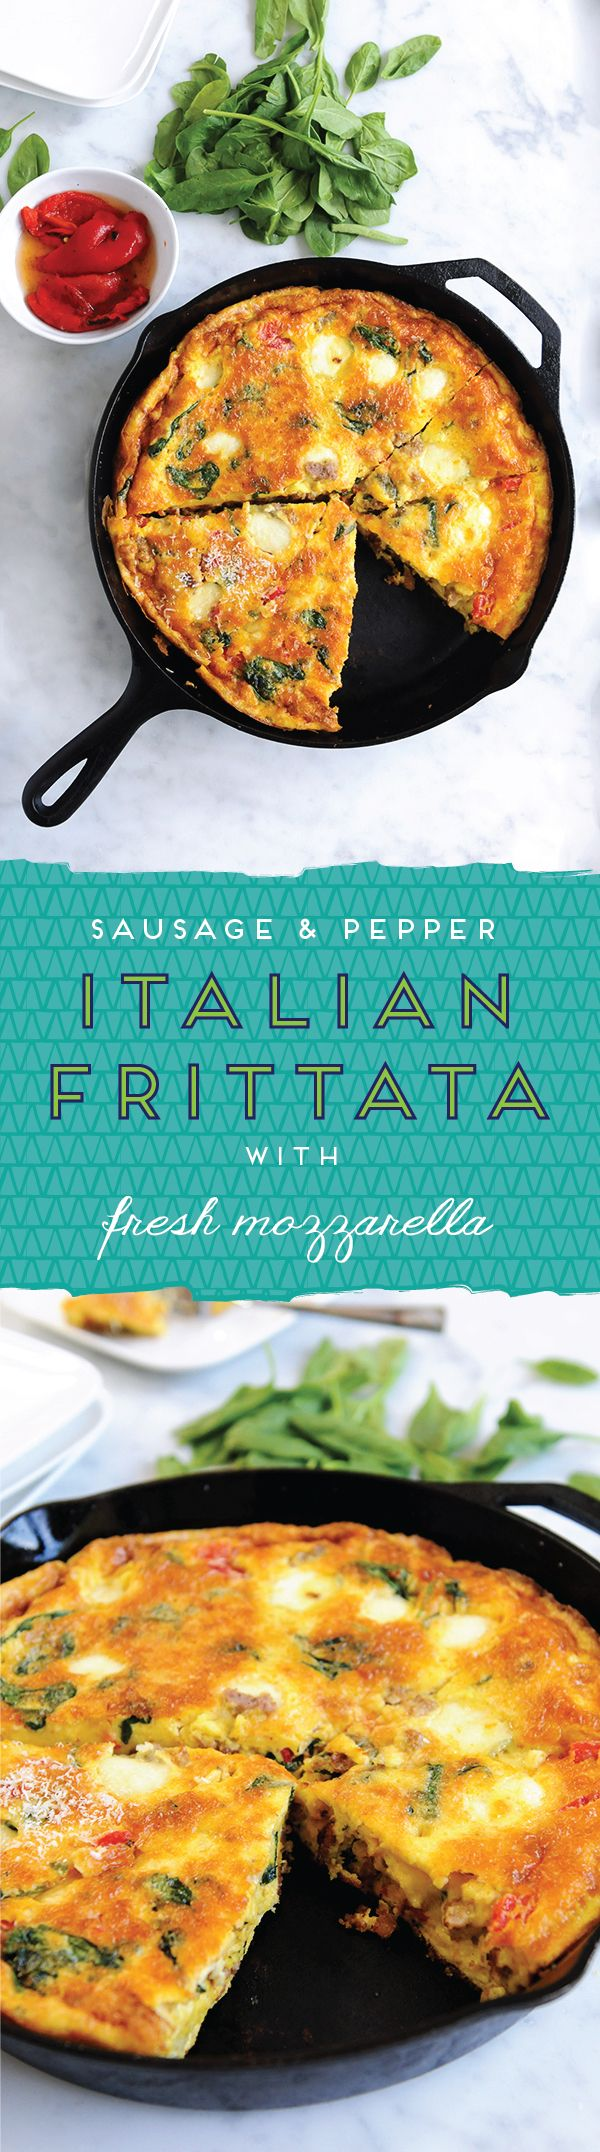 Sausage & Pepper Italian Frittata   Delallo   Sweet, smoky roasted peppers meet zesty Italian sausage in this beloved Italian-style egg frittata. Serve it up for breakfast or brunch with a side of salad greens tossed in a light vinaigrette.